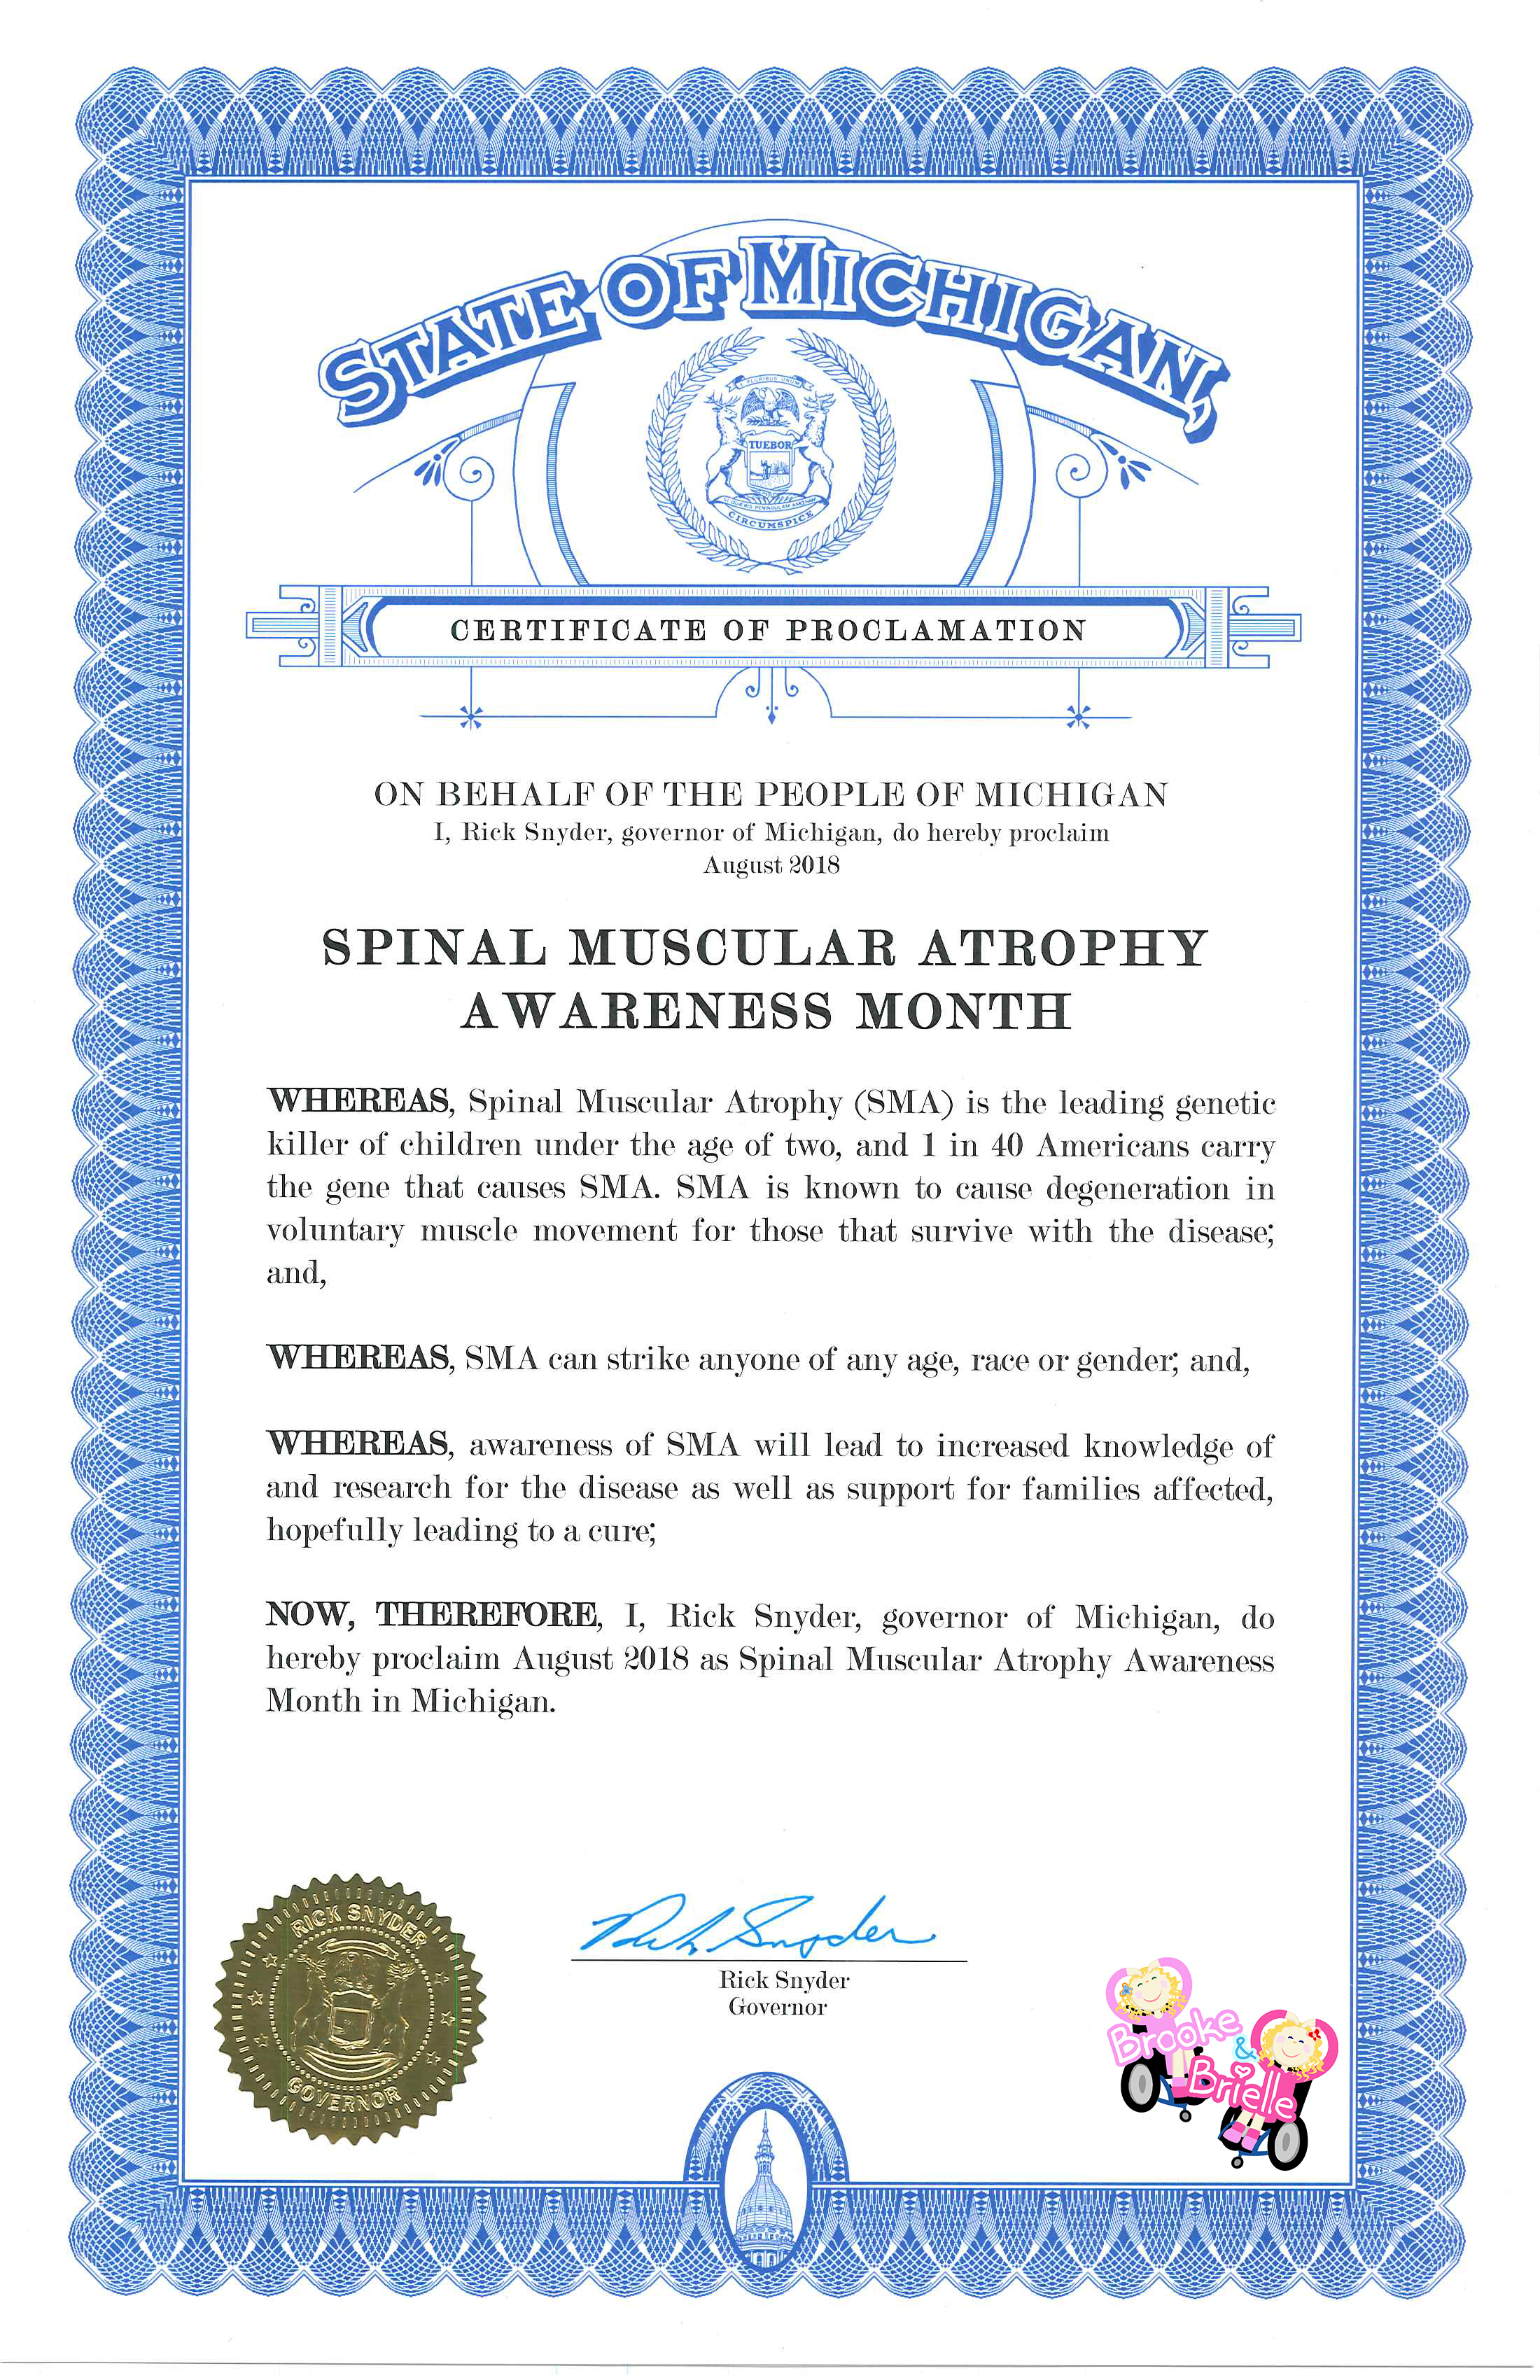 Spinal Muscular Atrophy Awareness Month logo included.jpg